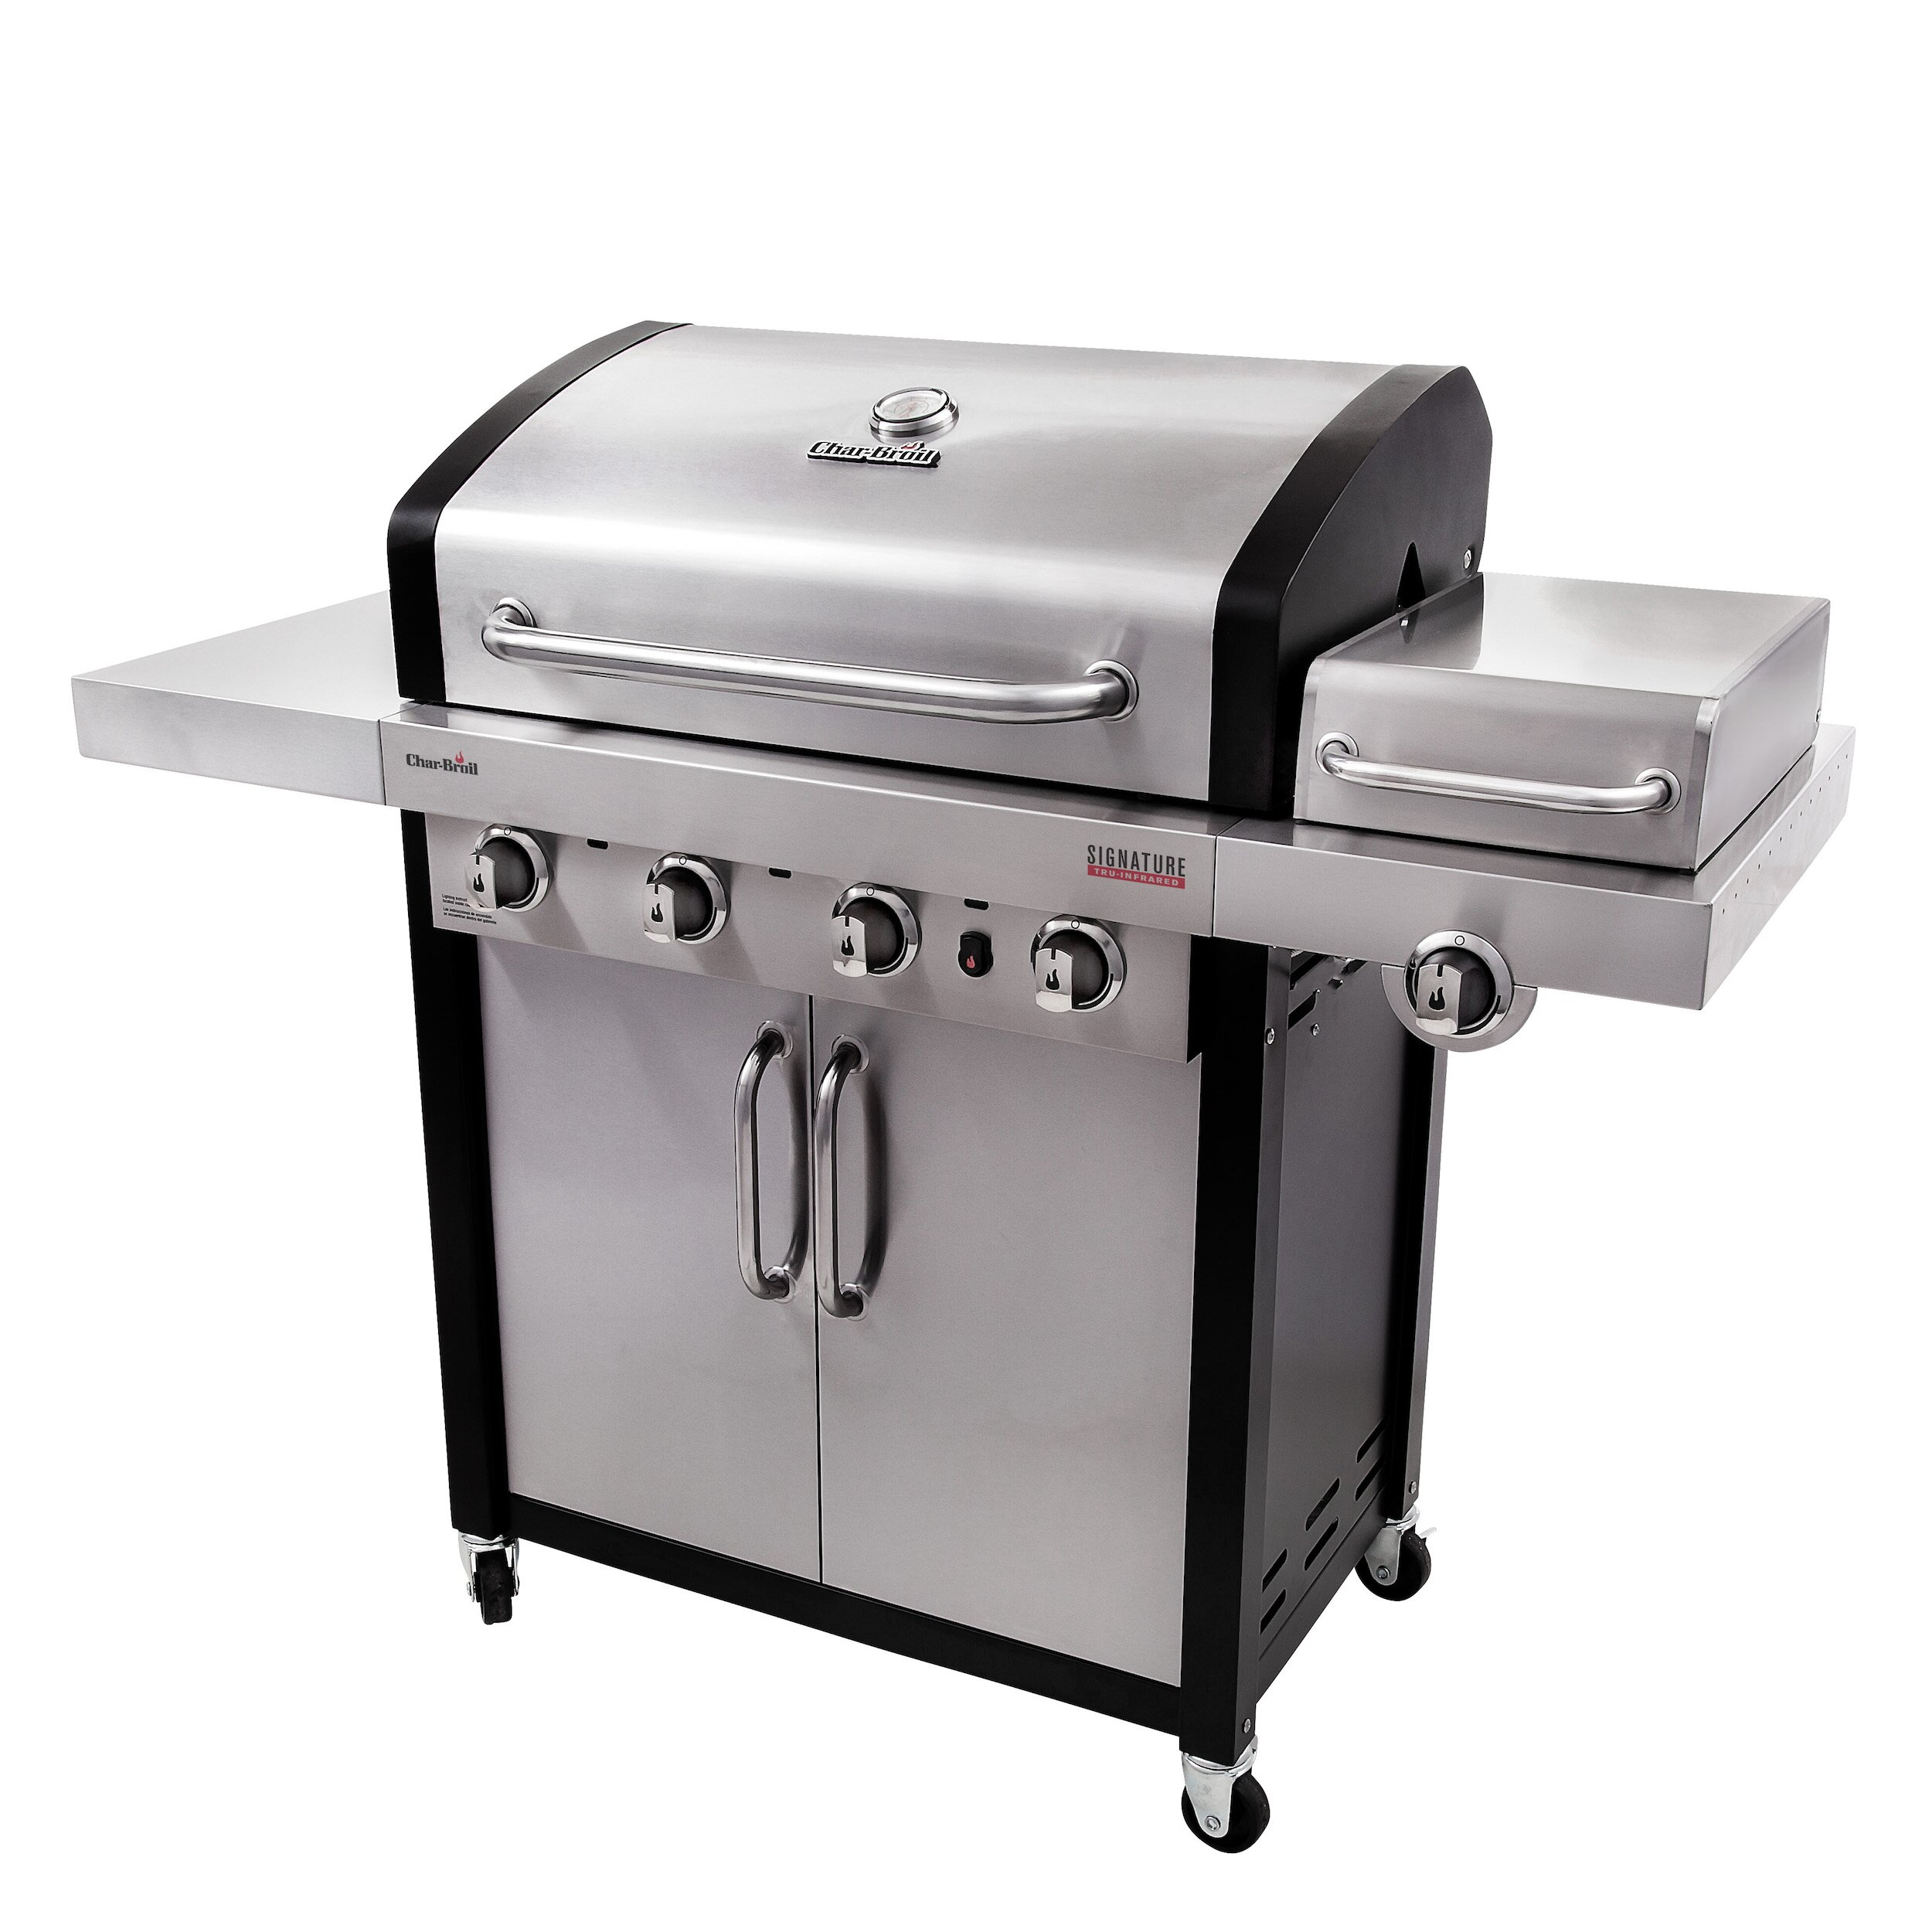 Charbroil Signature Infrared 4 Burner Propane Gas Grill